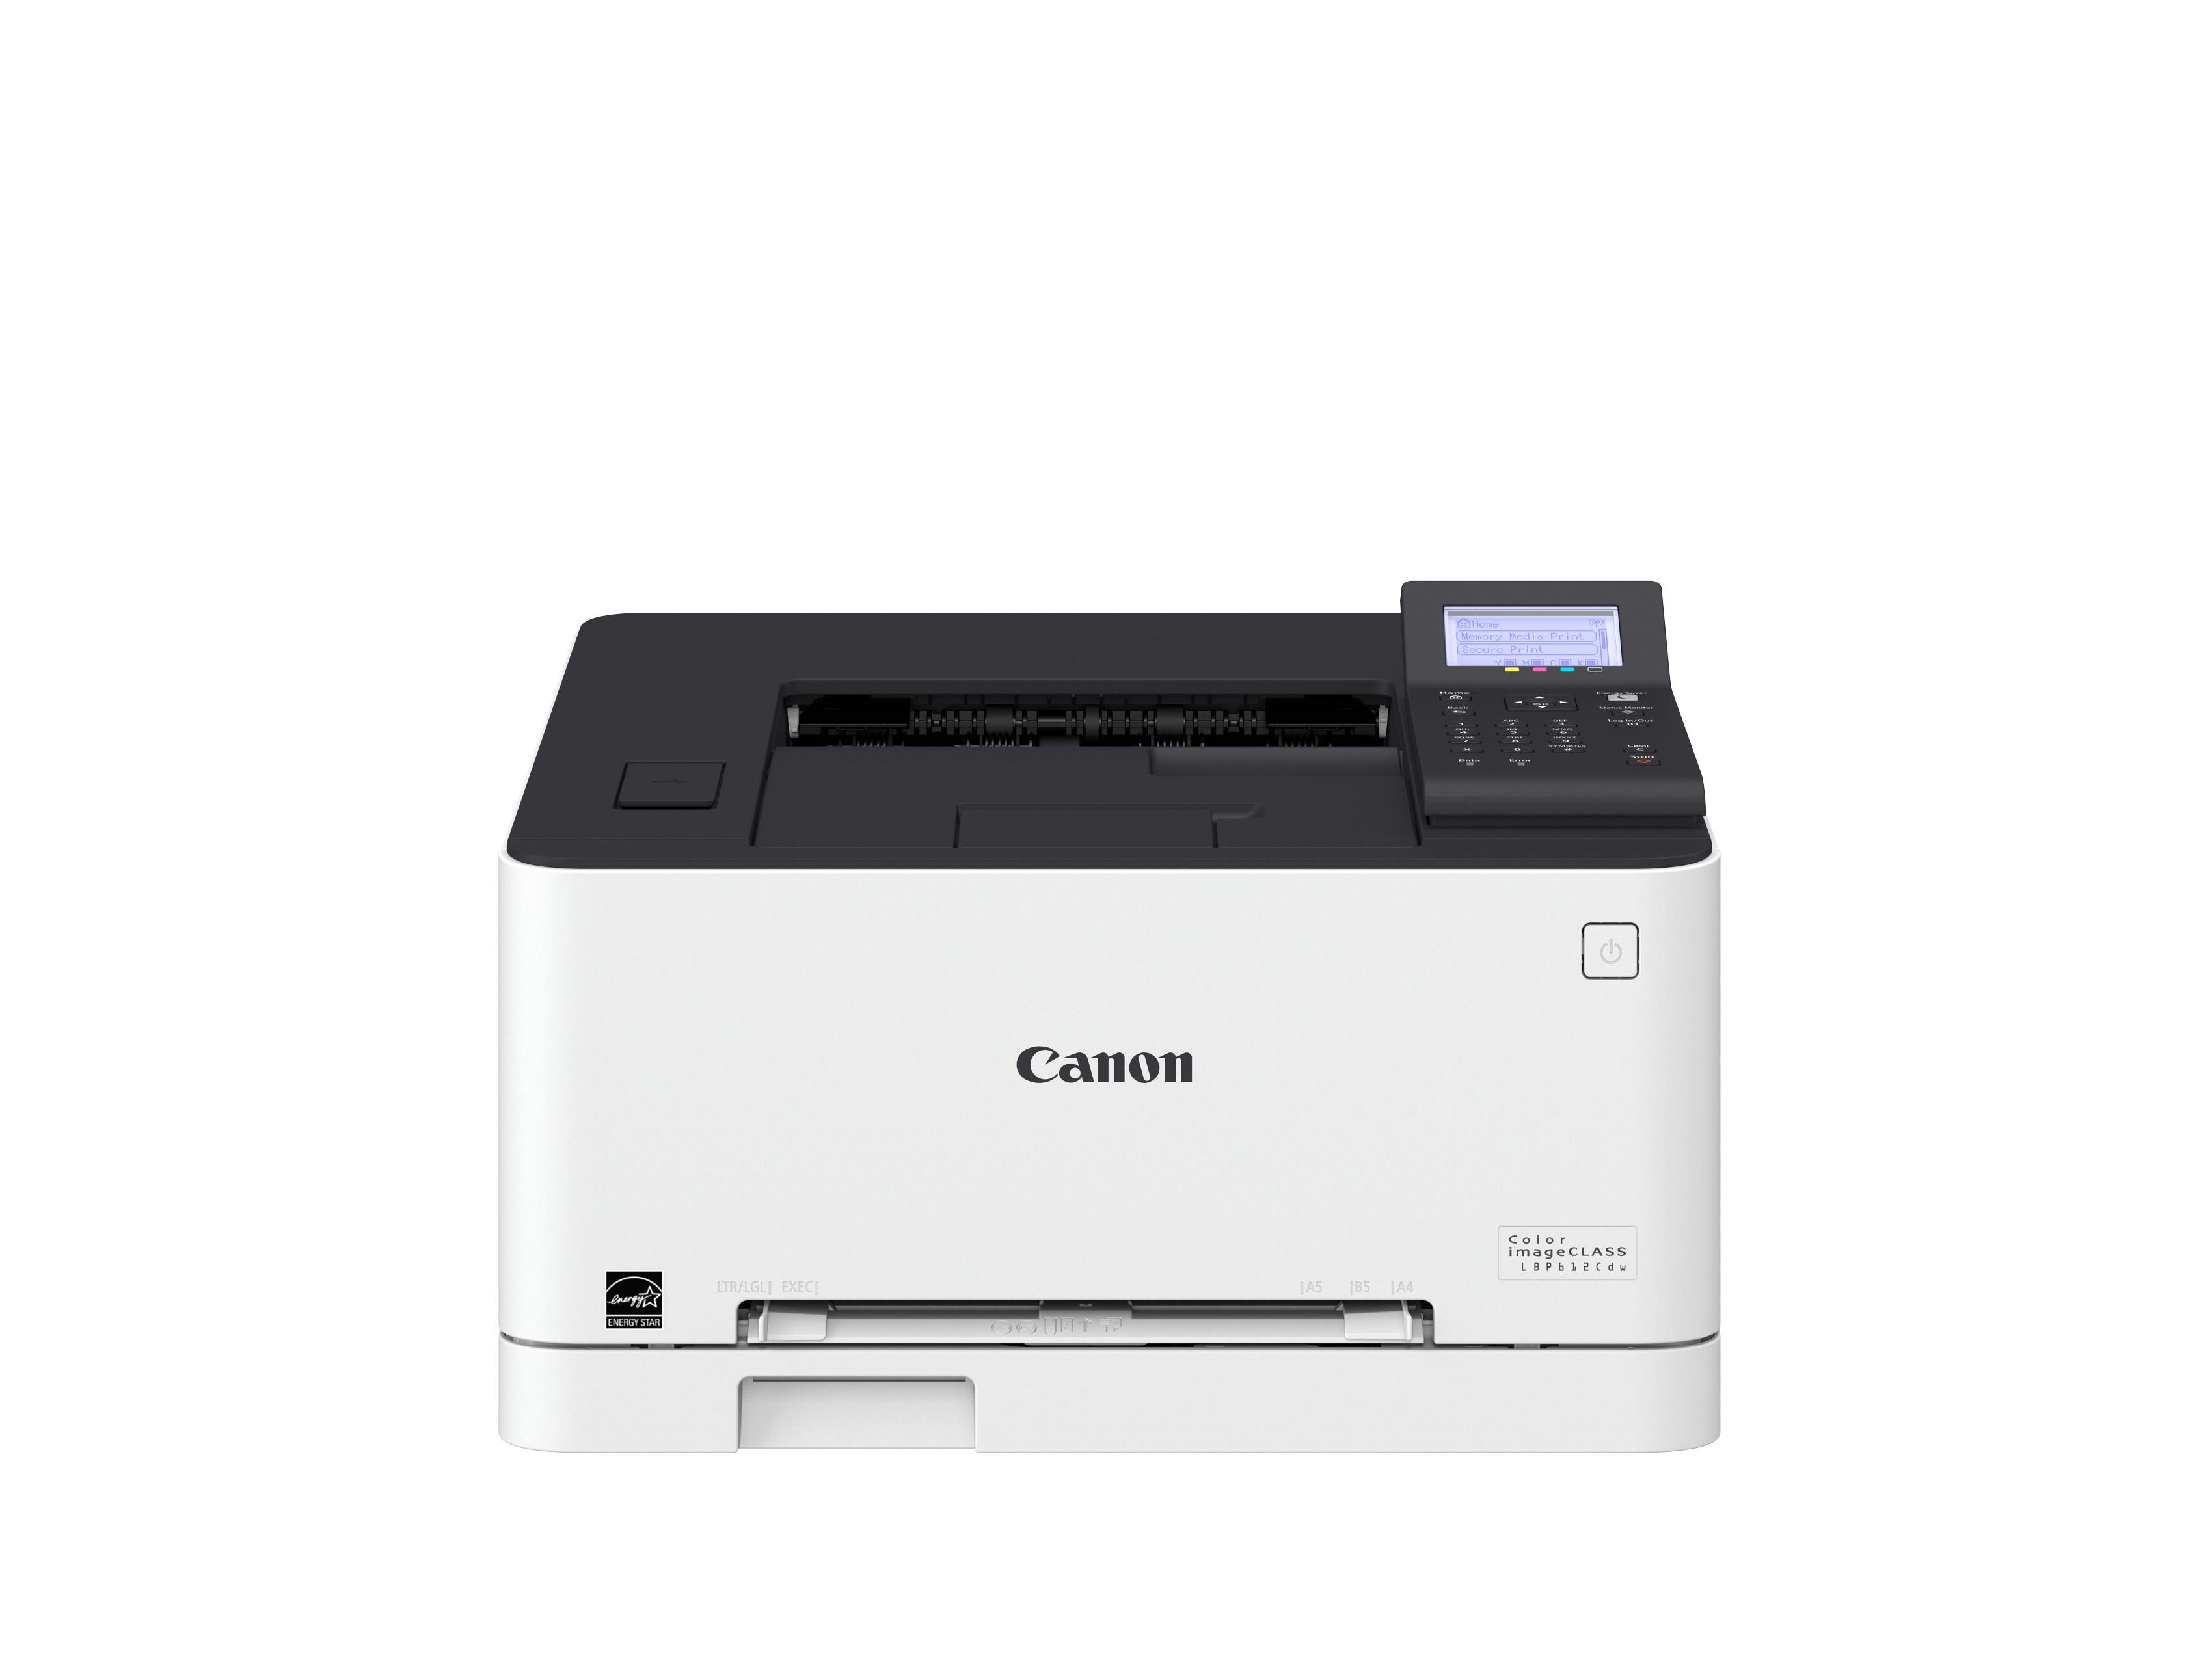 Canon imageCLASS LBP612CDW Wireless Color Laser Printer ...